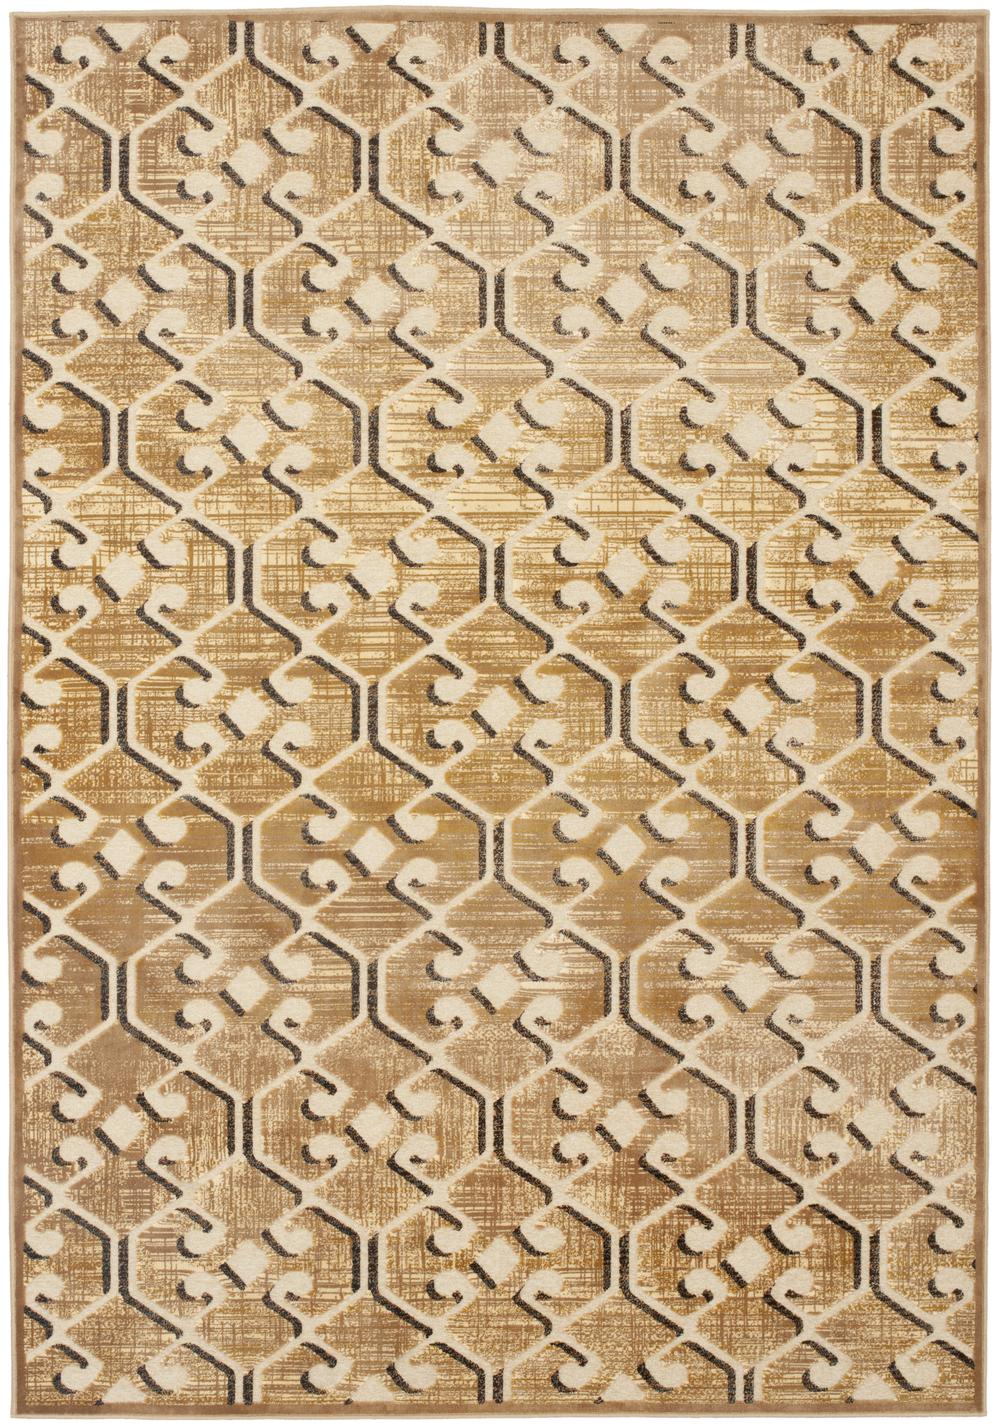 Safavieh paradise par164 604 taupe and multi area rug for Area 604